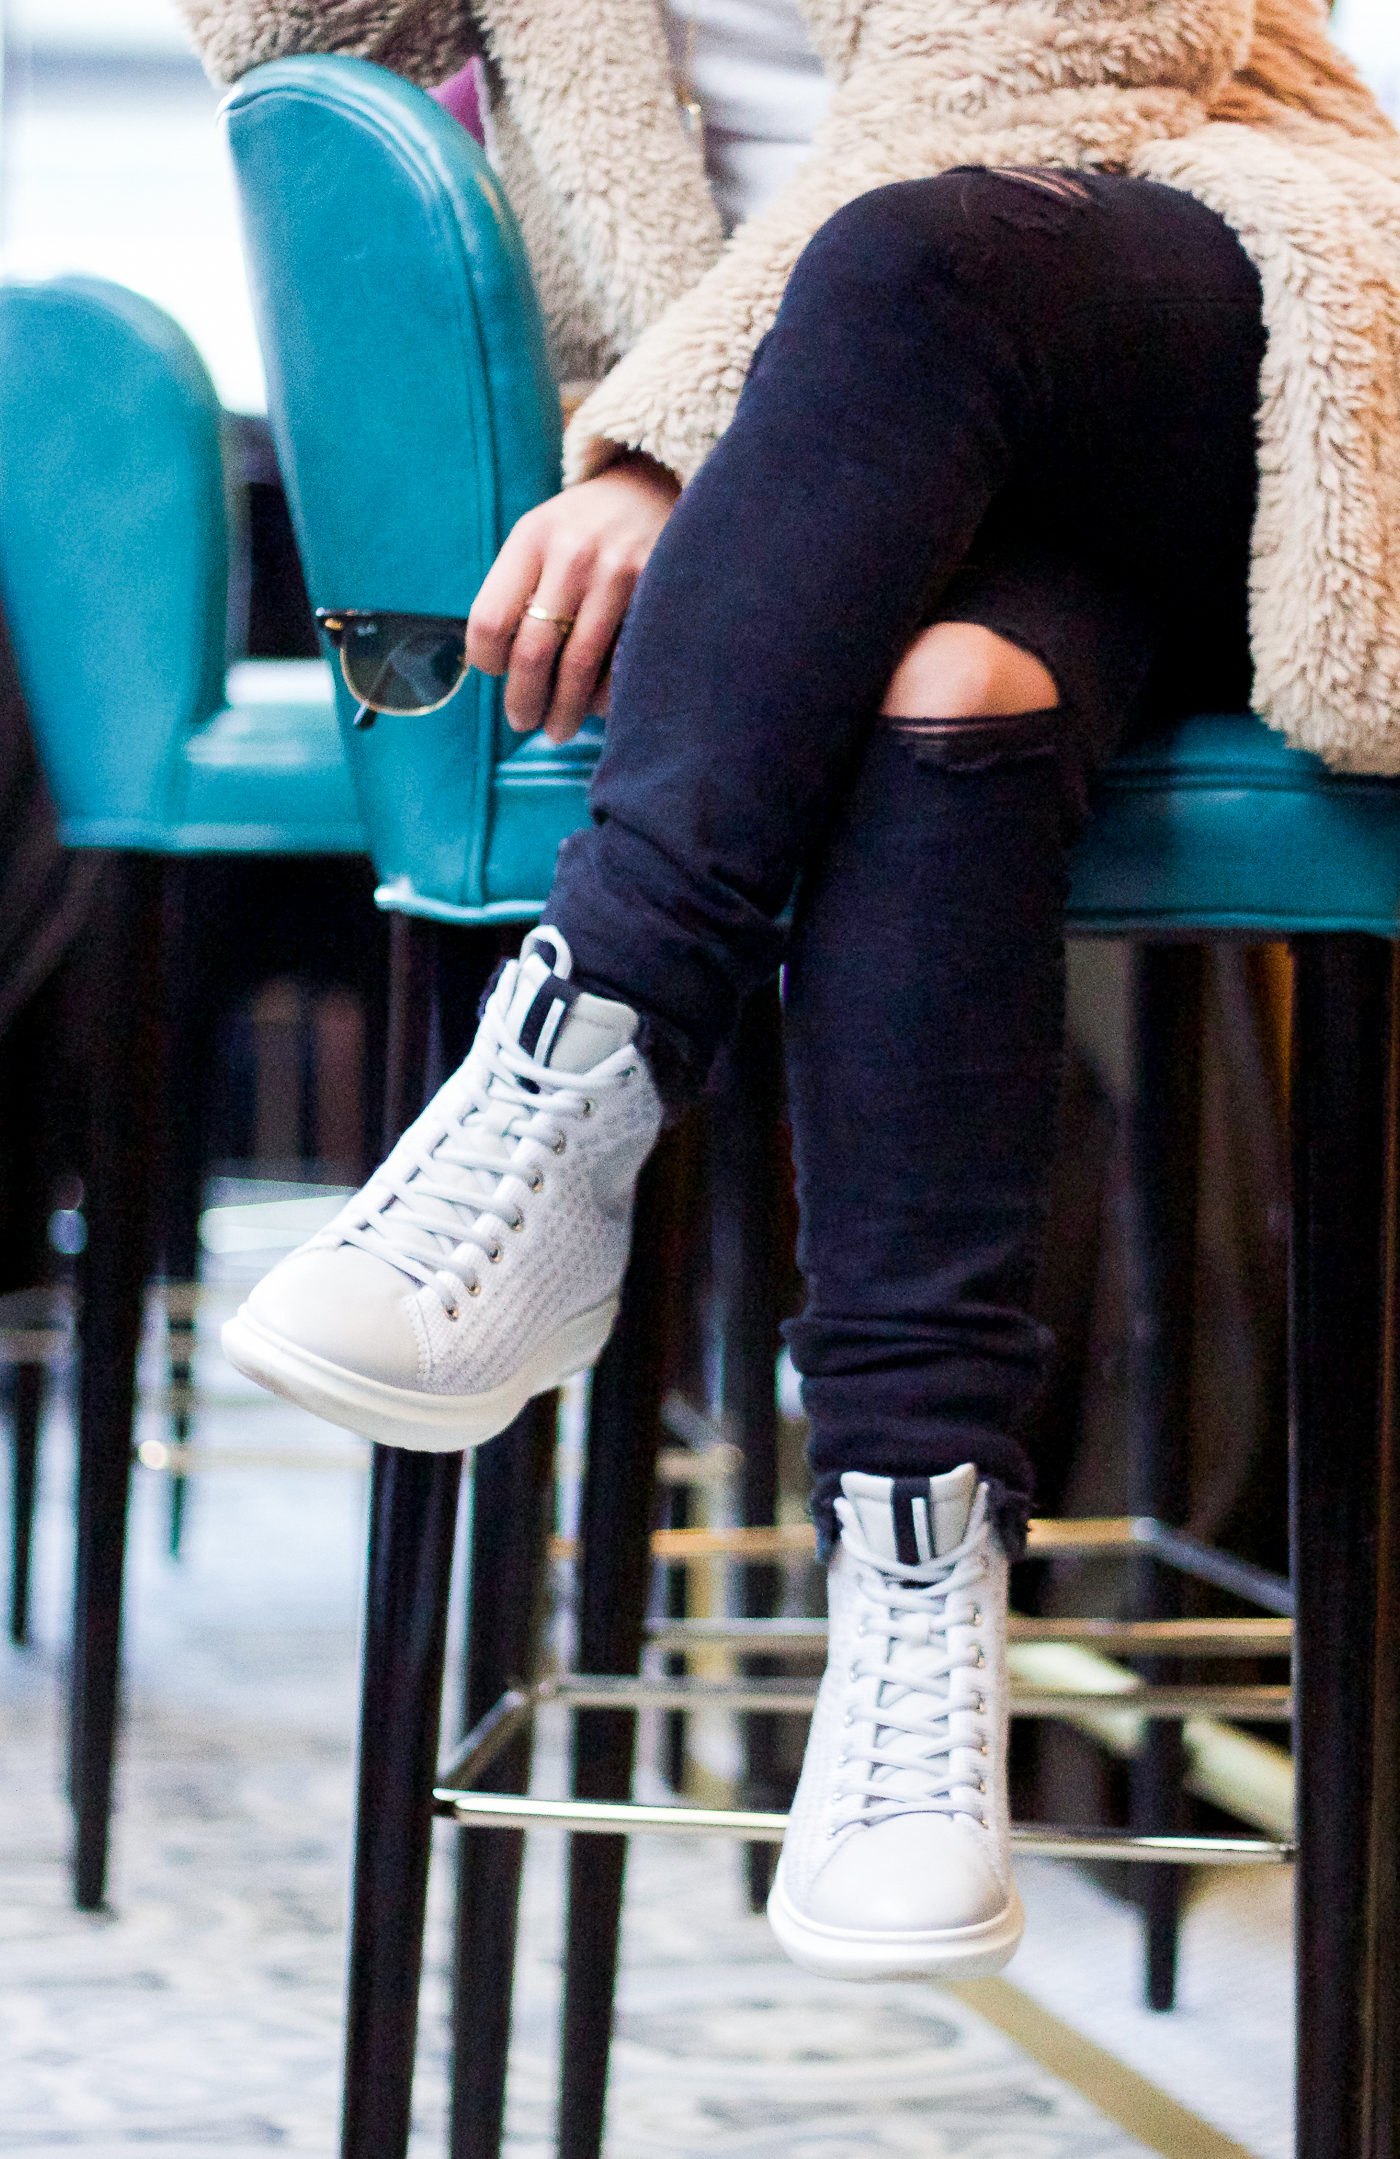 Canadian Style Blogger wearing the ECCO Soft 3 High Top Sneakers